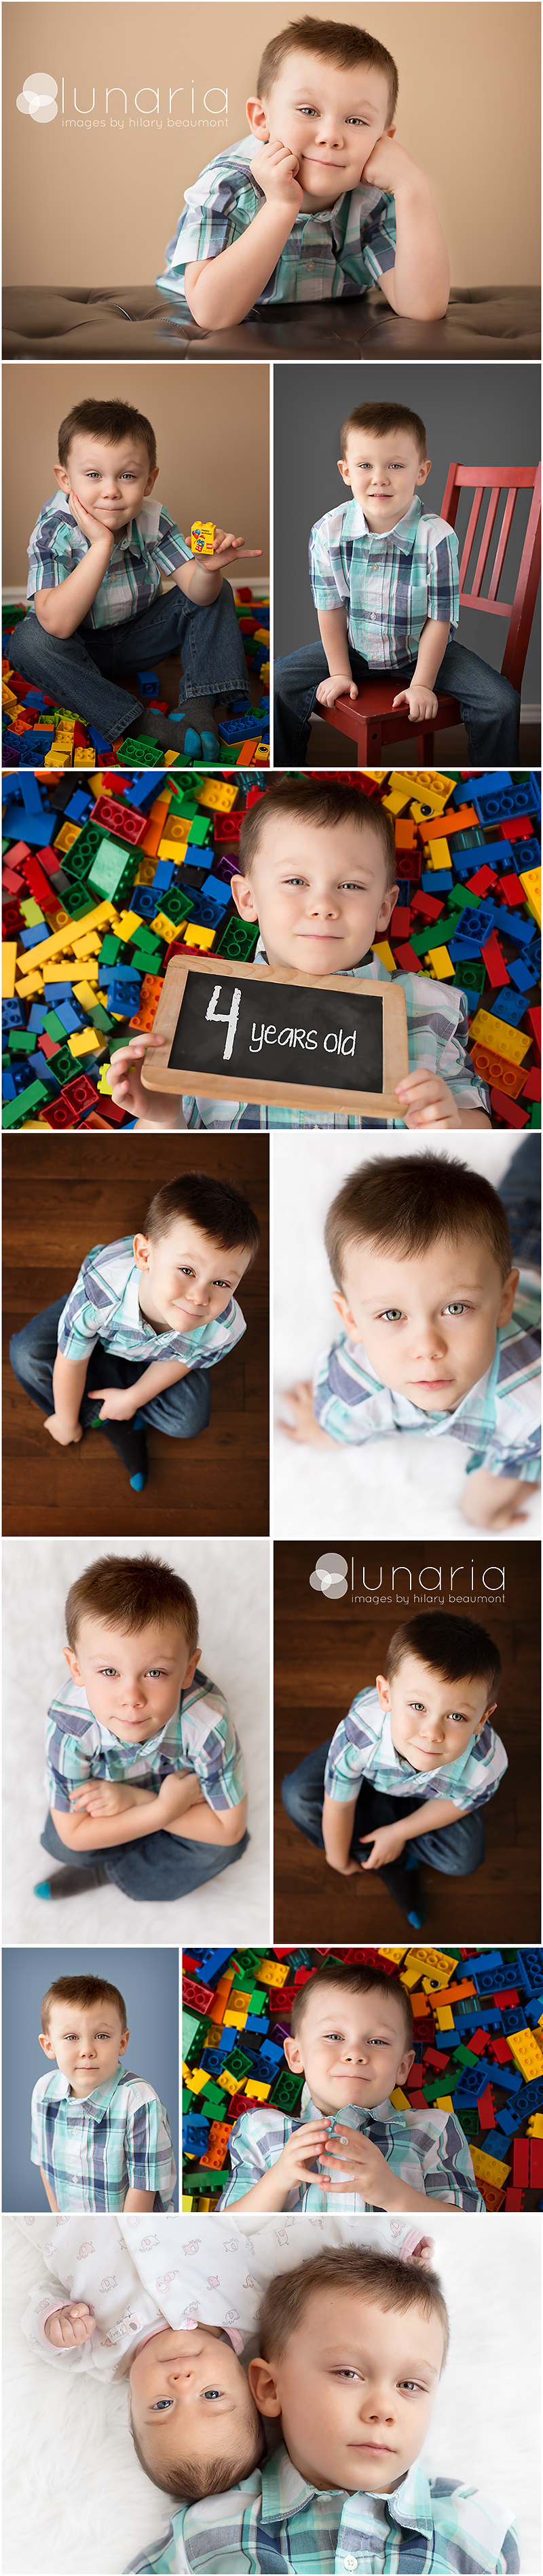 Fourth birthday photography shoot including poses with hardwood floor, Duplo blocks, and white fur rug.  Photos by Hilary Beaumont of Lunaria Photography in Whitby.